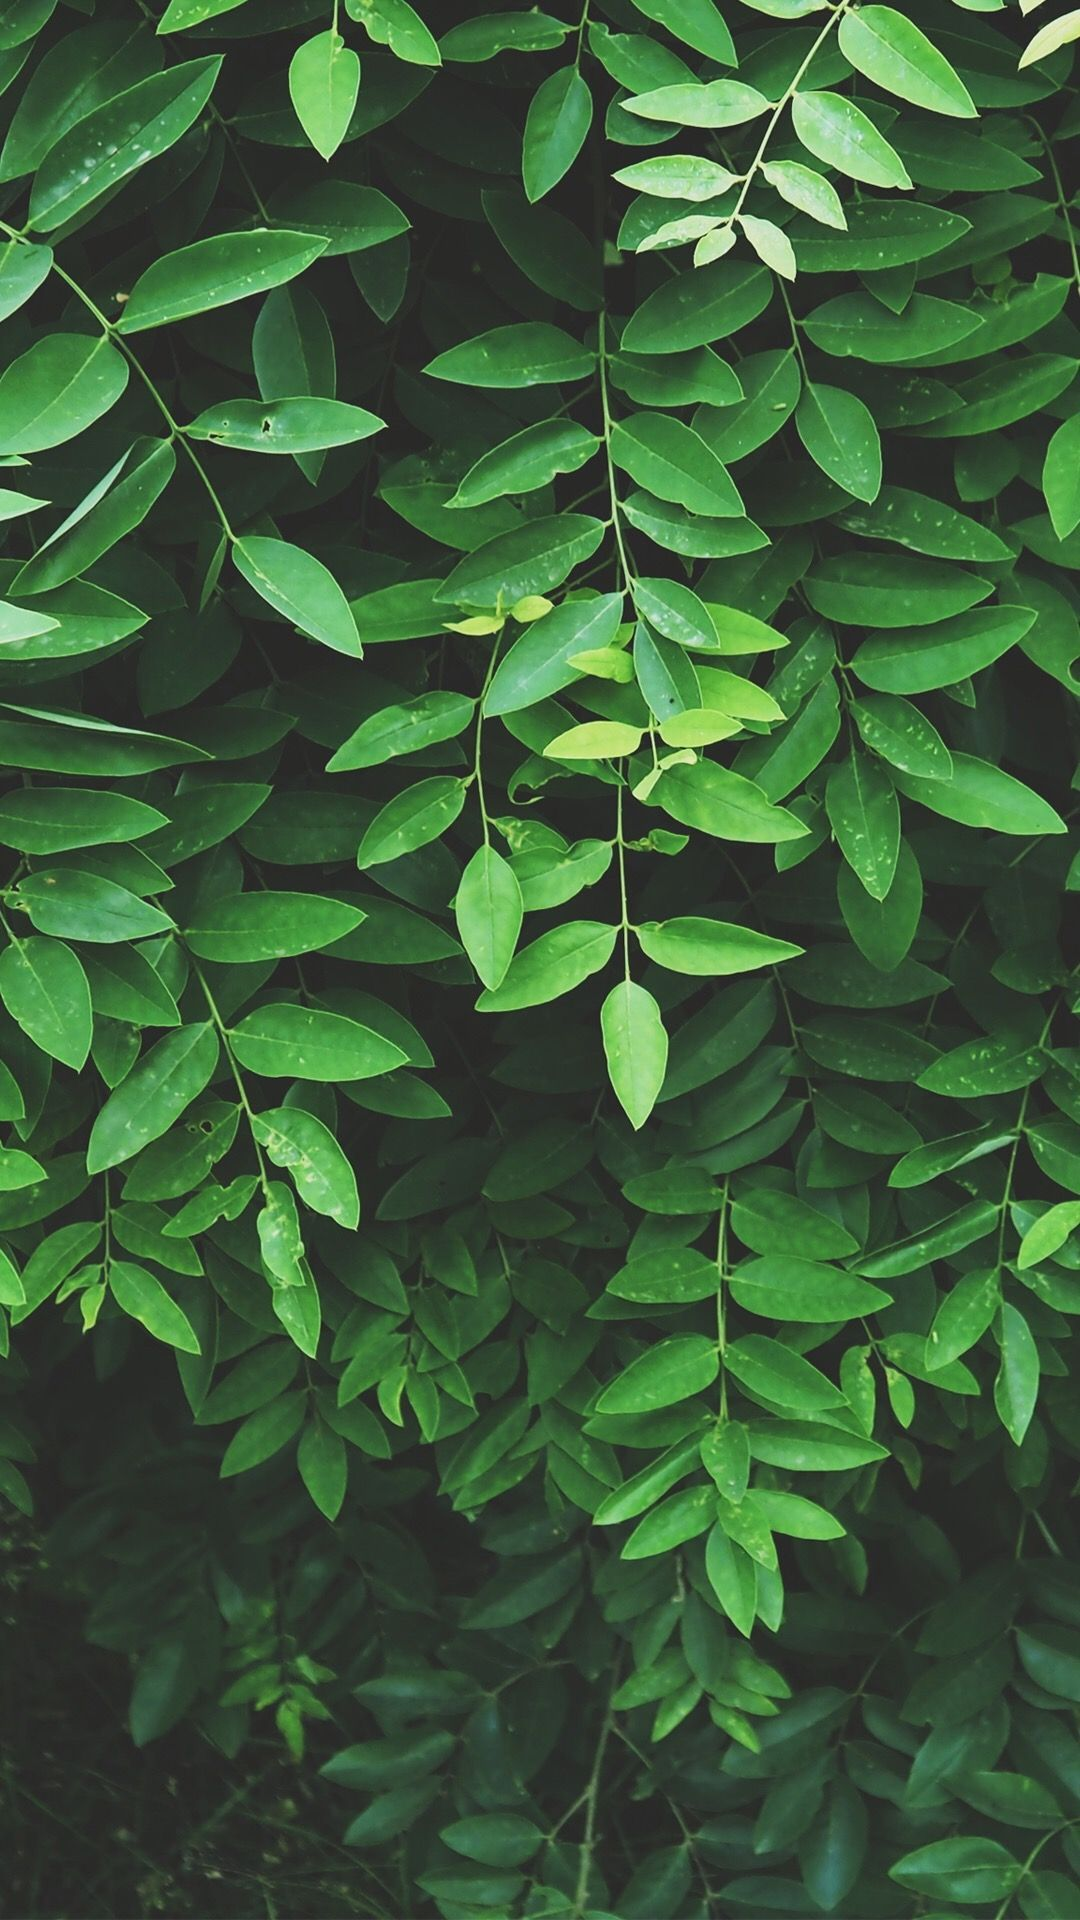 Leafs Plant Green Aesthetic Green Wallpaper Nature Aesthetic